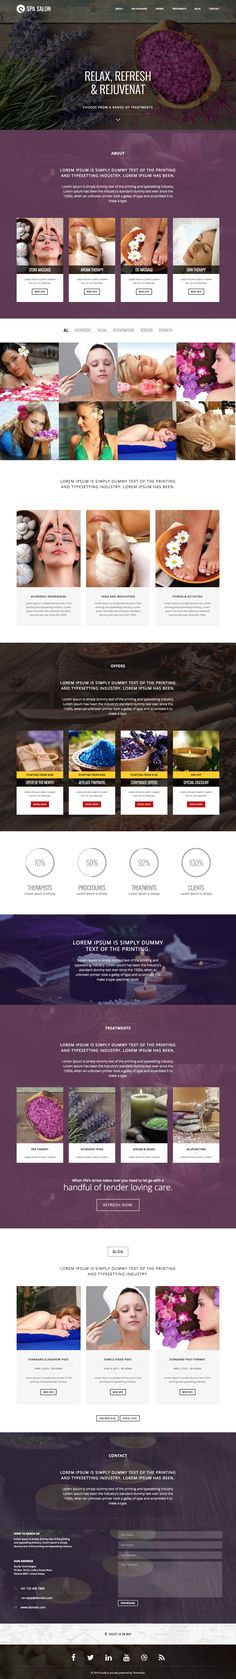 1000 images about one page website templates on pinterest for Interior design employment agency